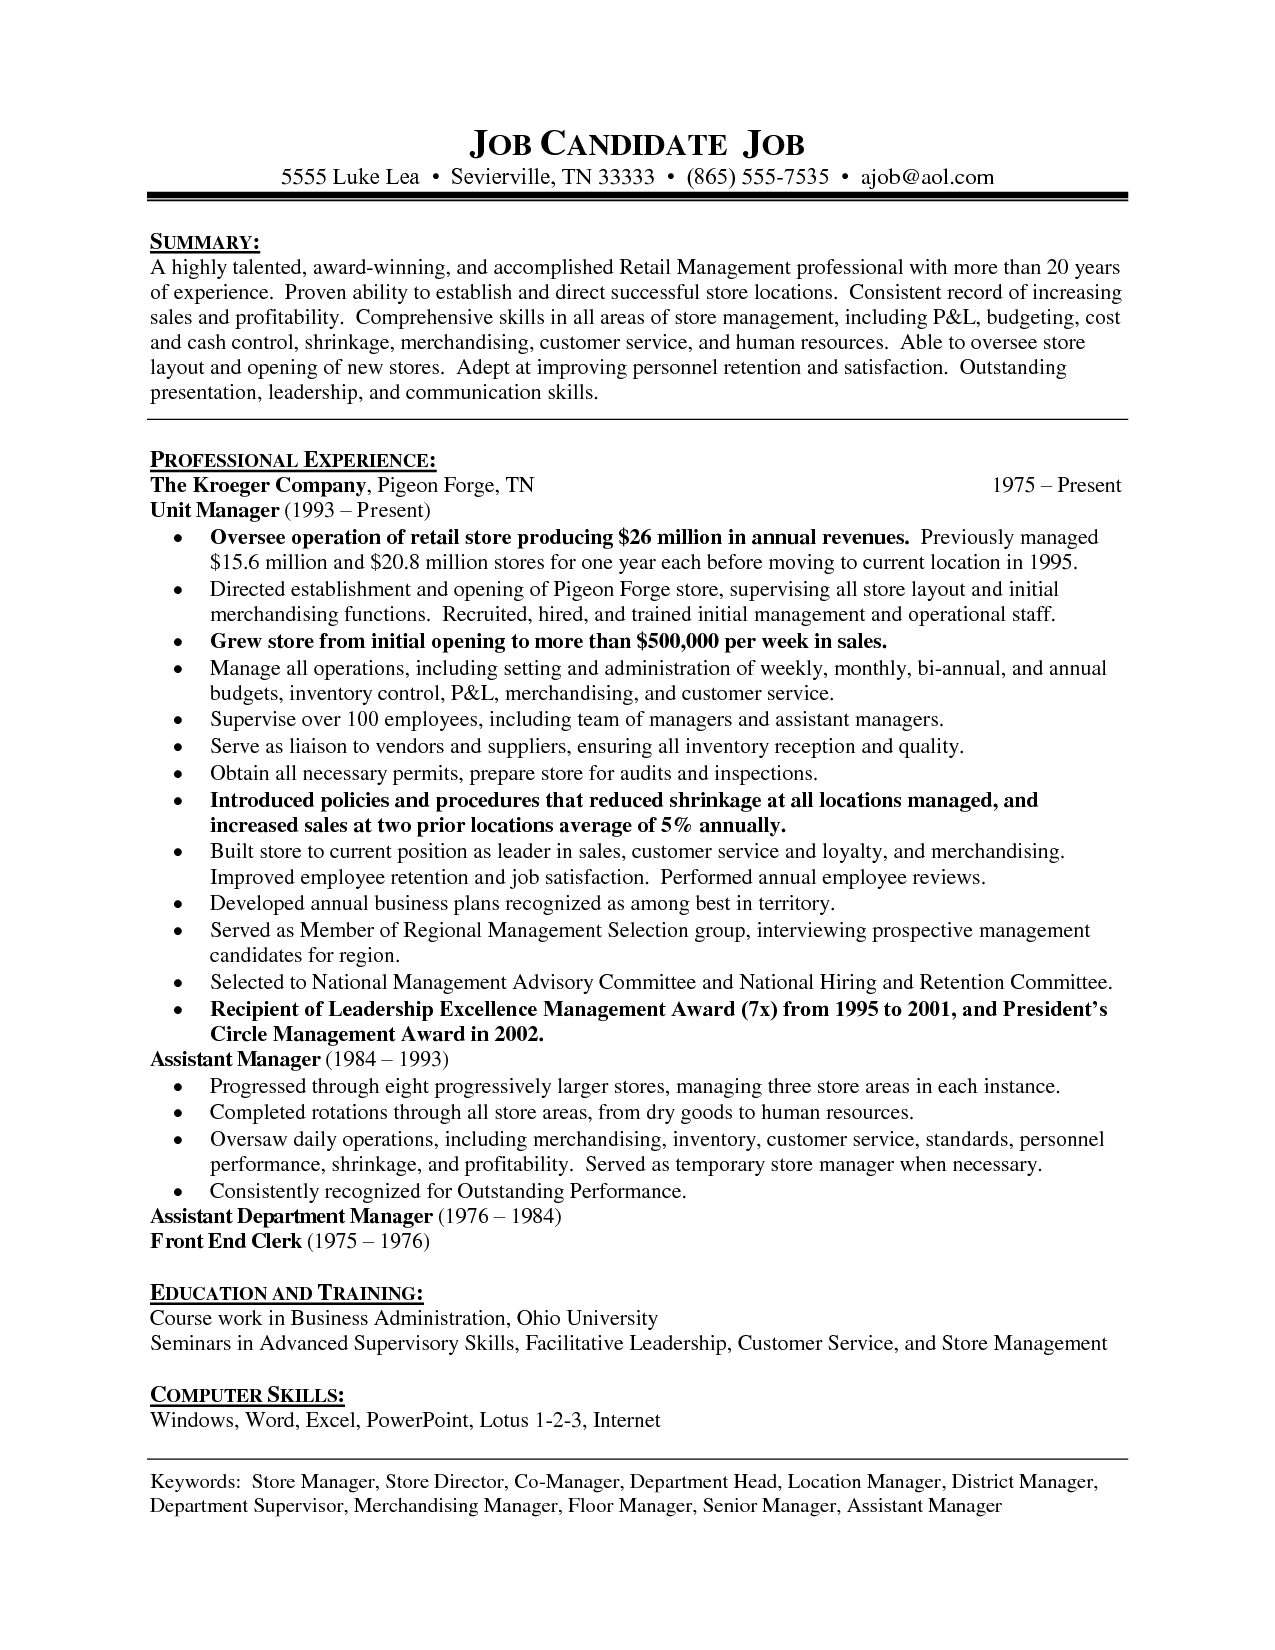 Resume For Retail Jobs Retail Department Store Manager Resume  Vision Specialist  Good .